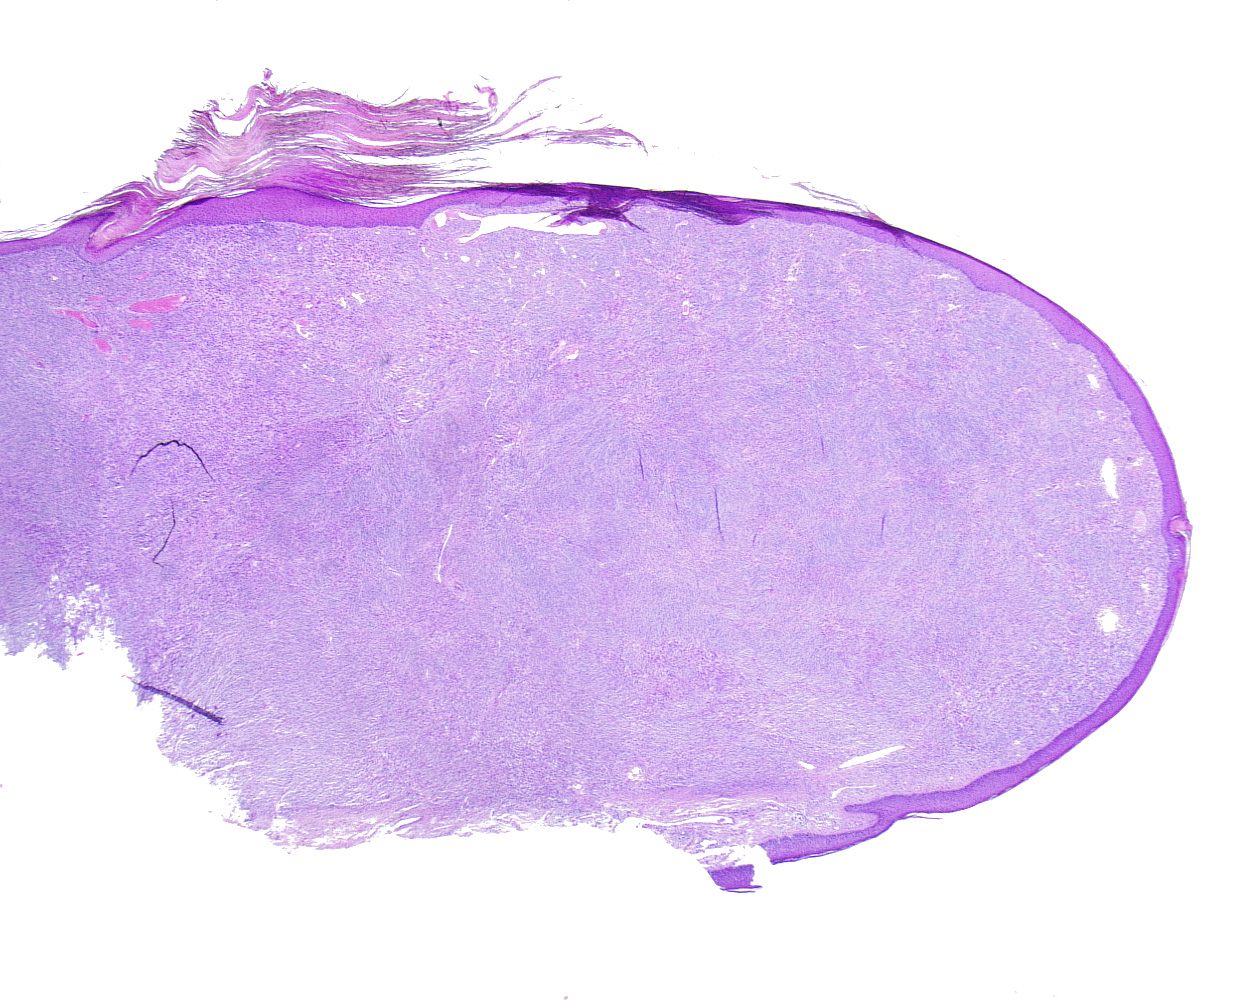 Spindle cell tumor